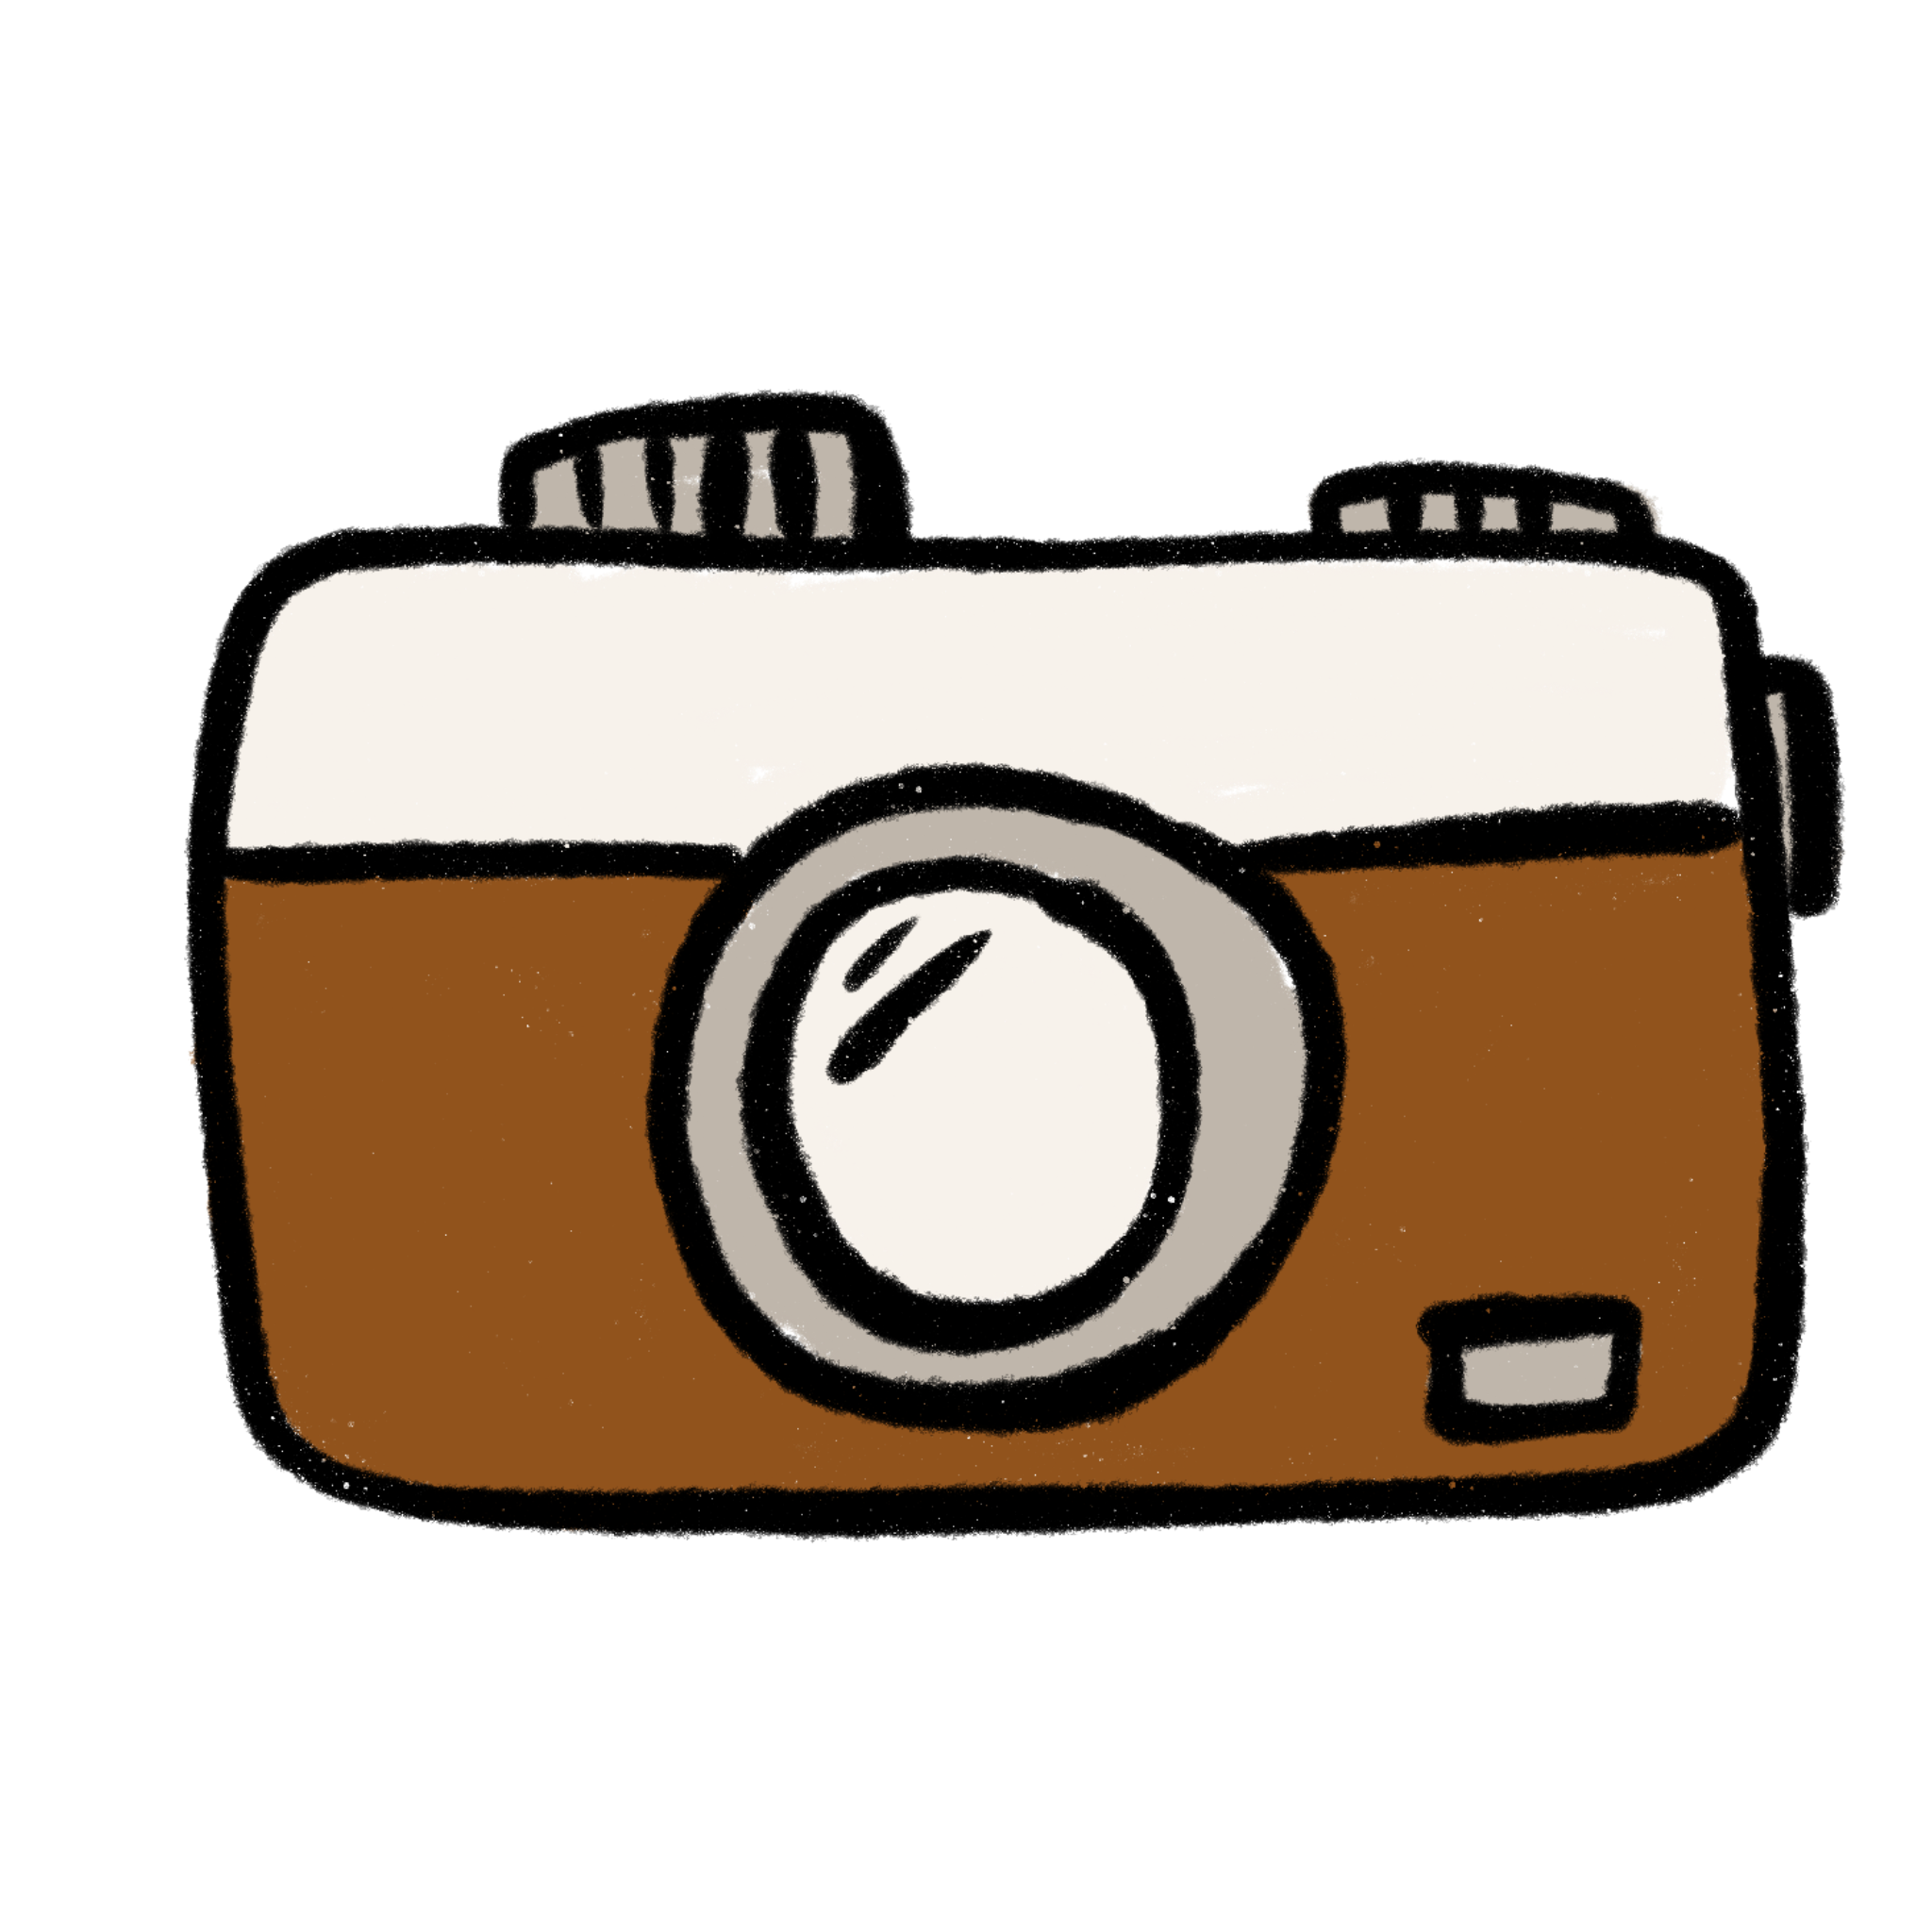 Picture of a camera drawing